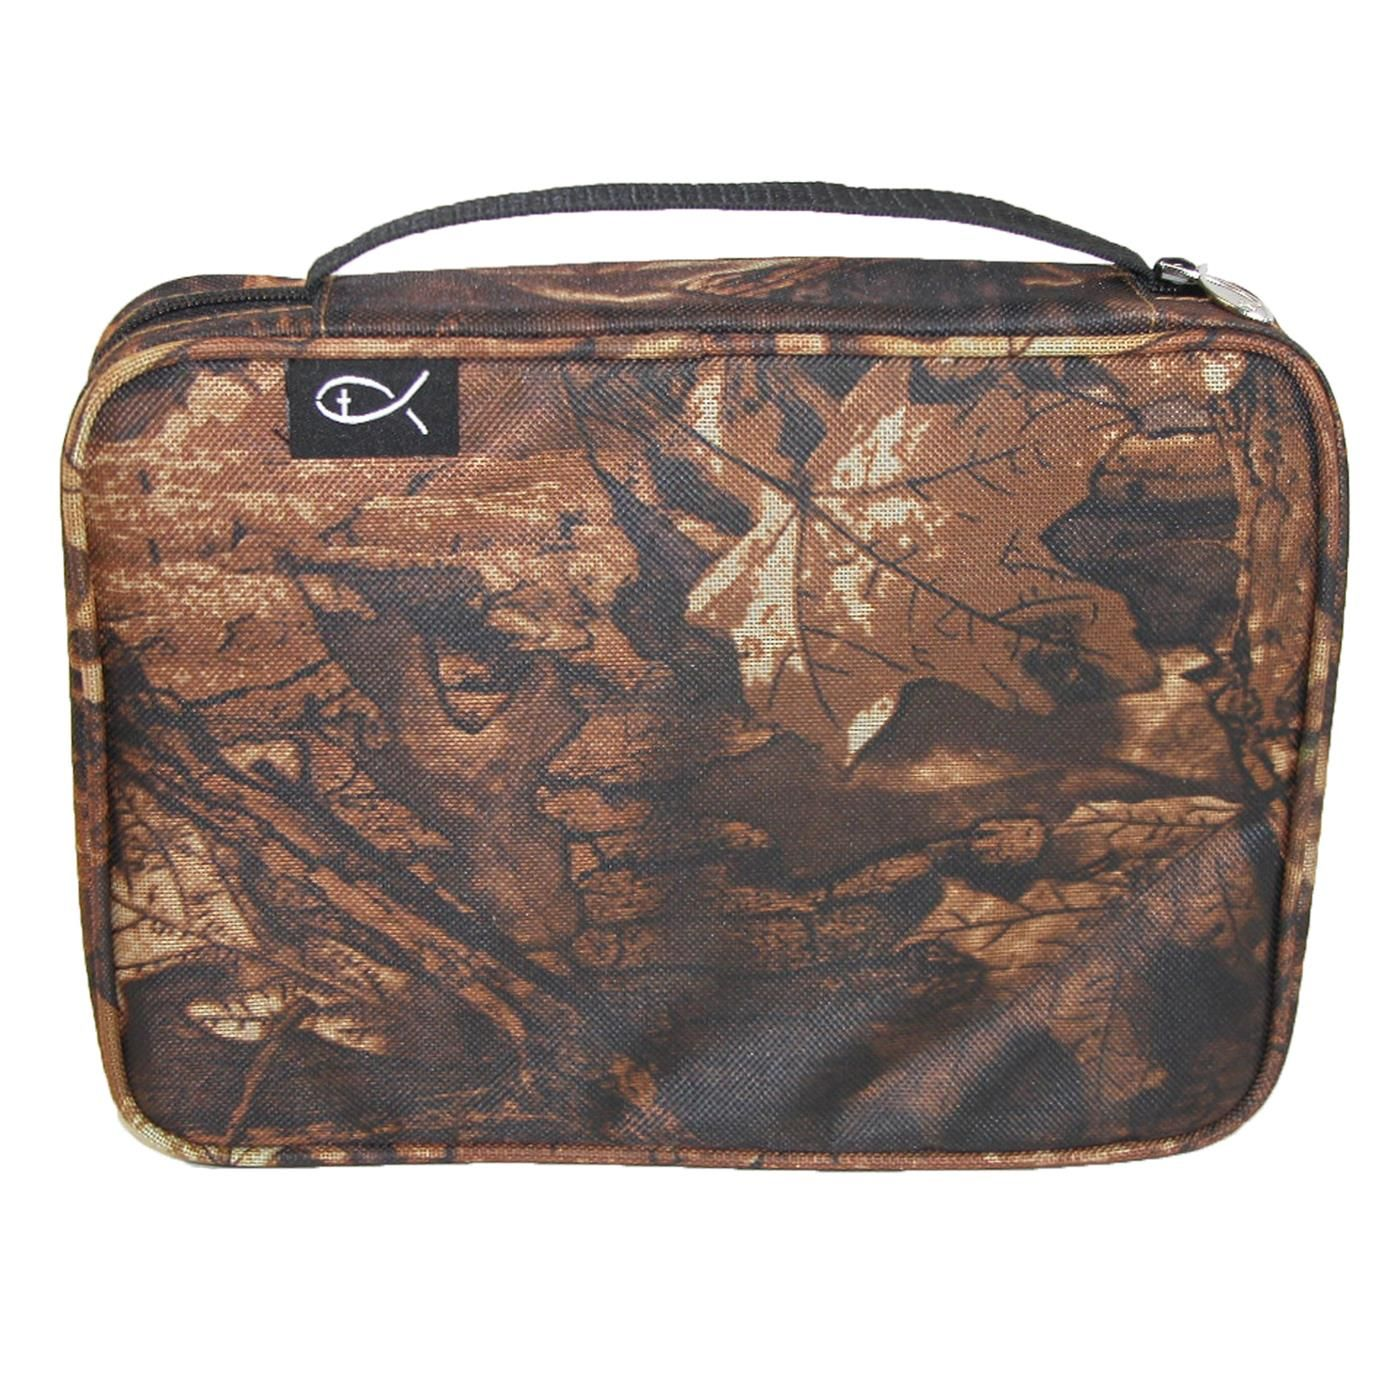 This sturdy canvas bible cover features an all over autumn forest camouflage print. The zip around closure will keep your bible protected while on the go. The bible cover features a carrying handle and Christian fish zipper pull and label.